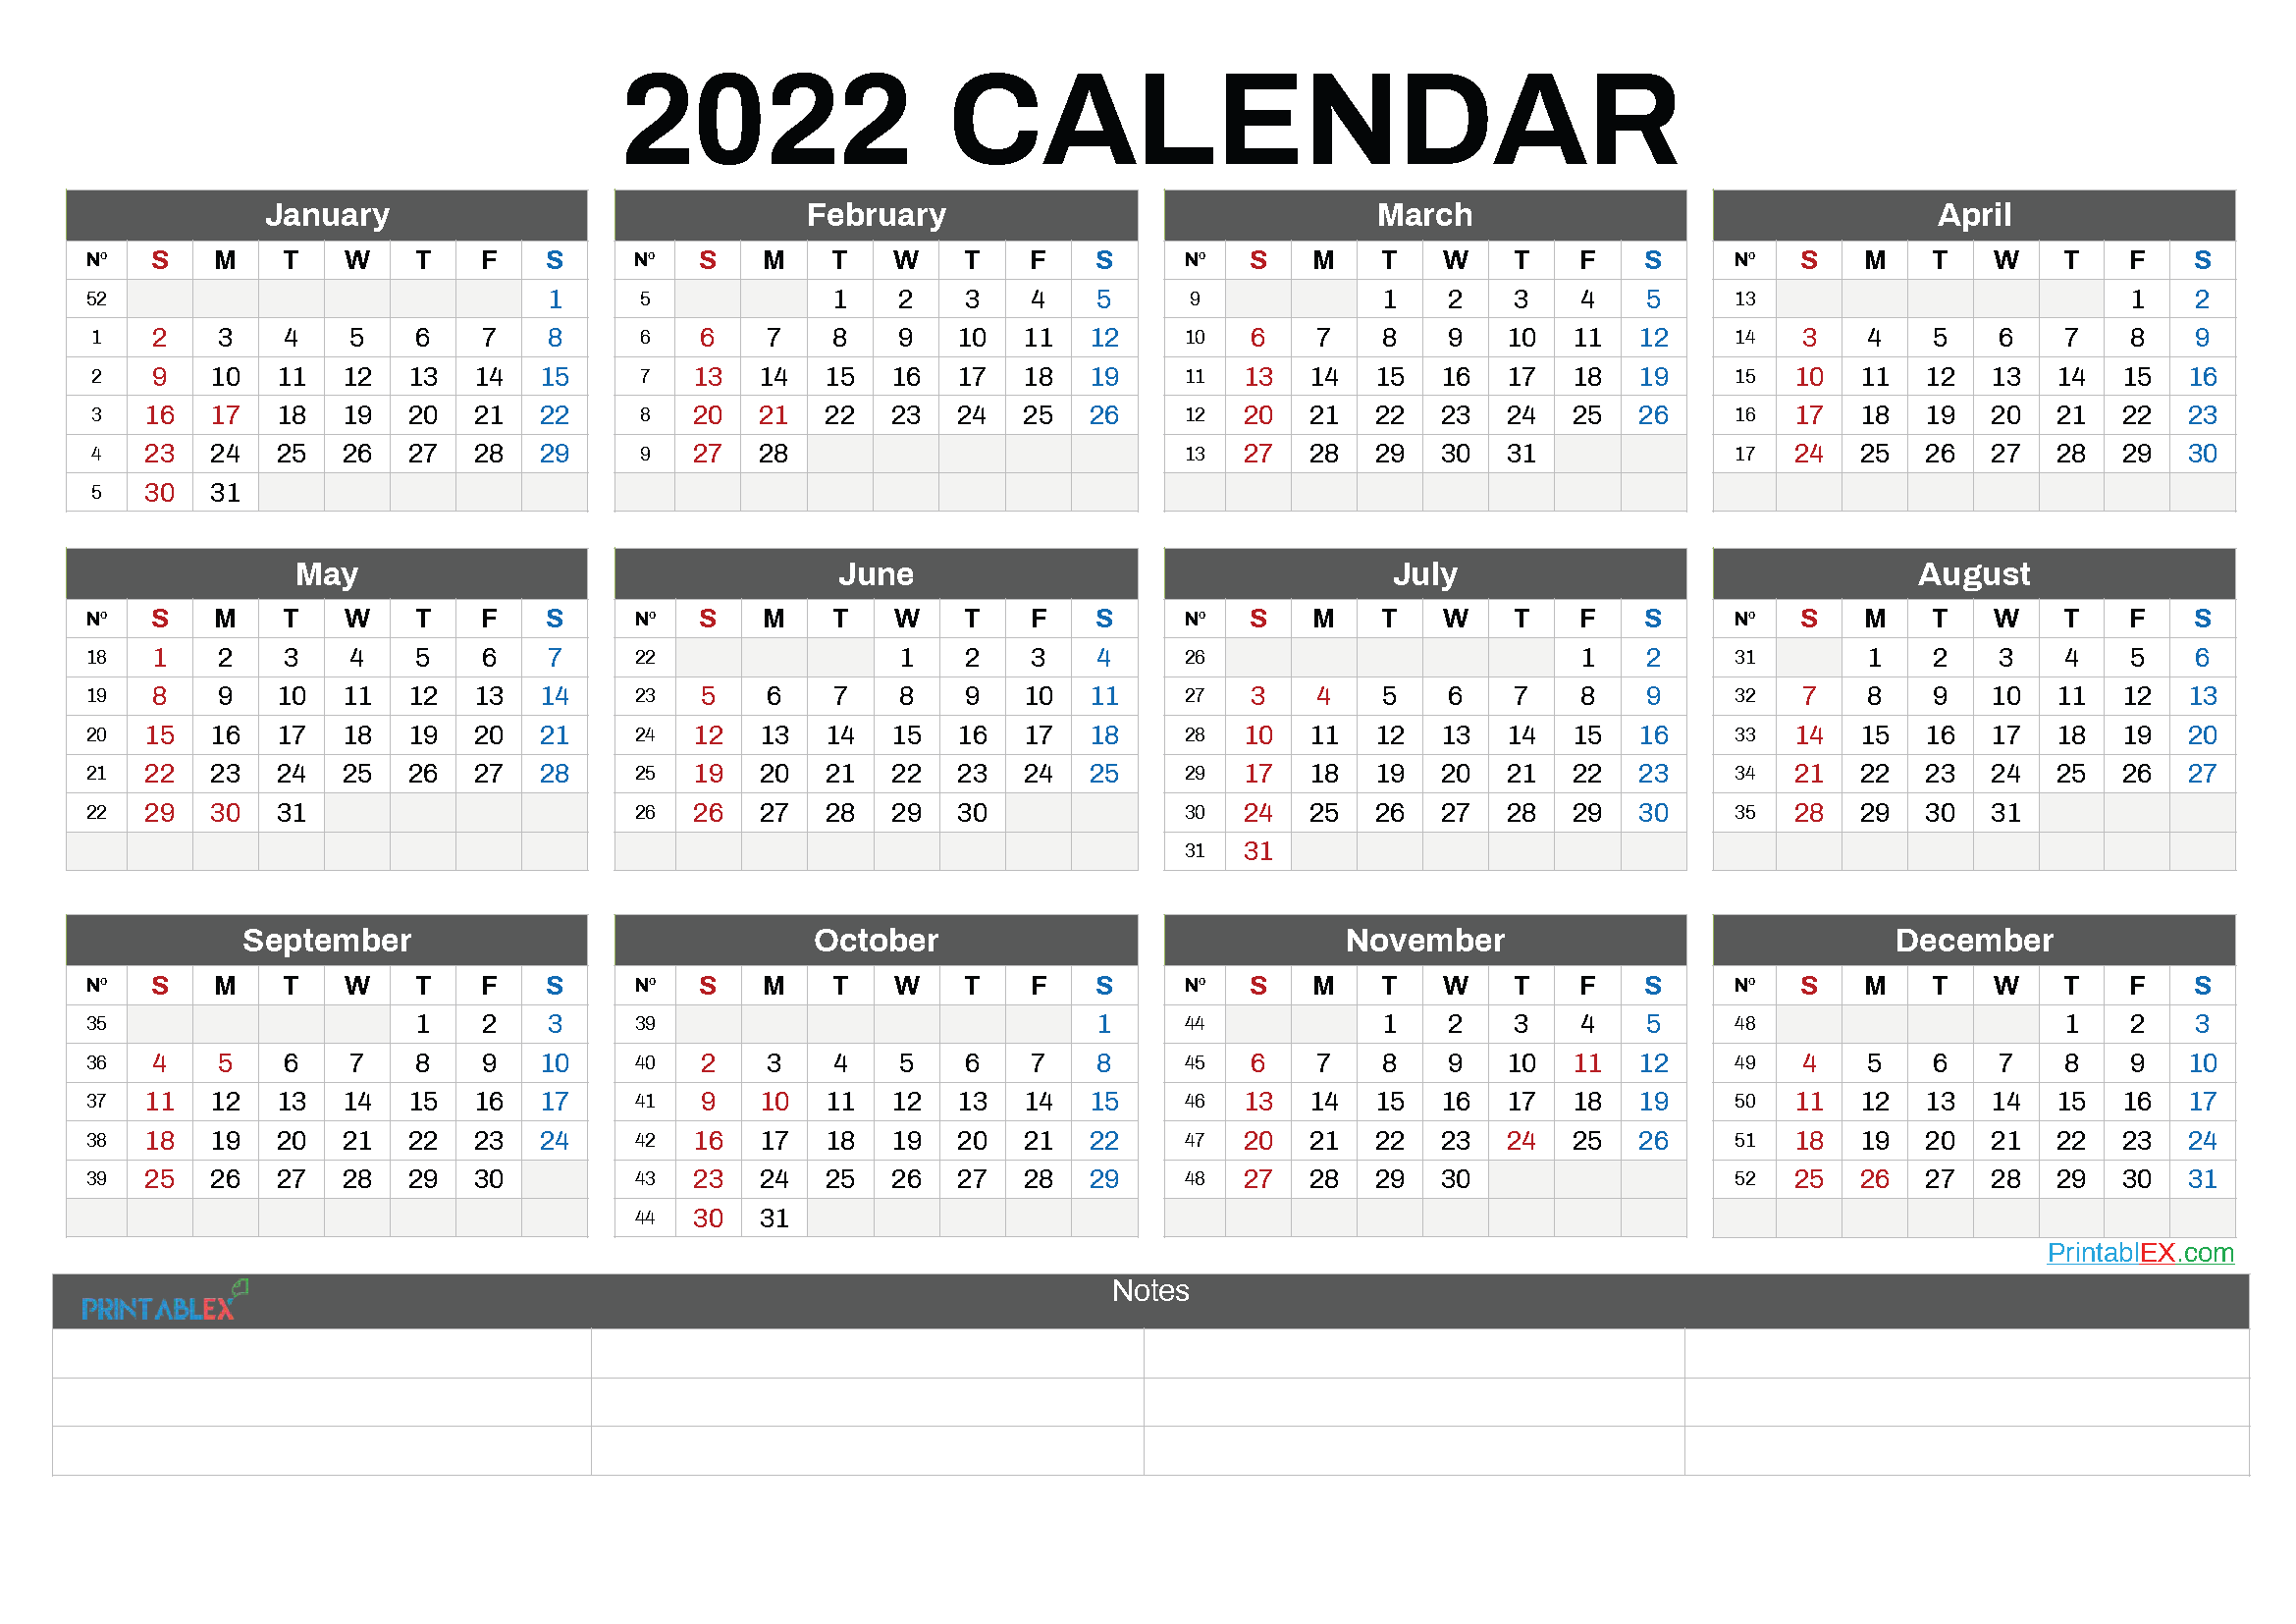 Free Printable 2022 Calendar by Year (Font: dsdig)